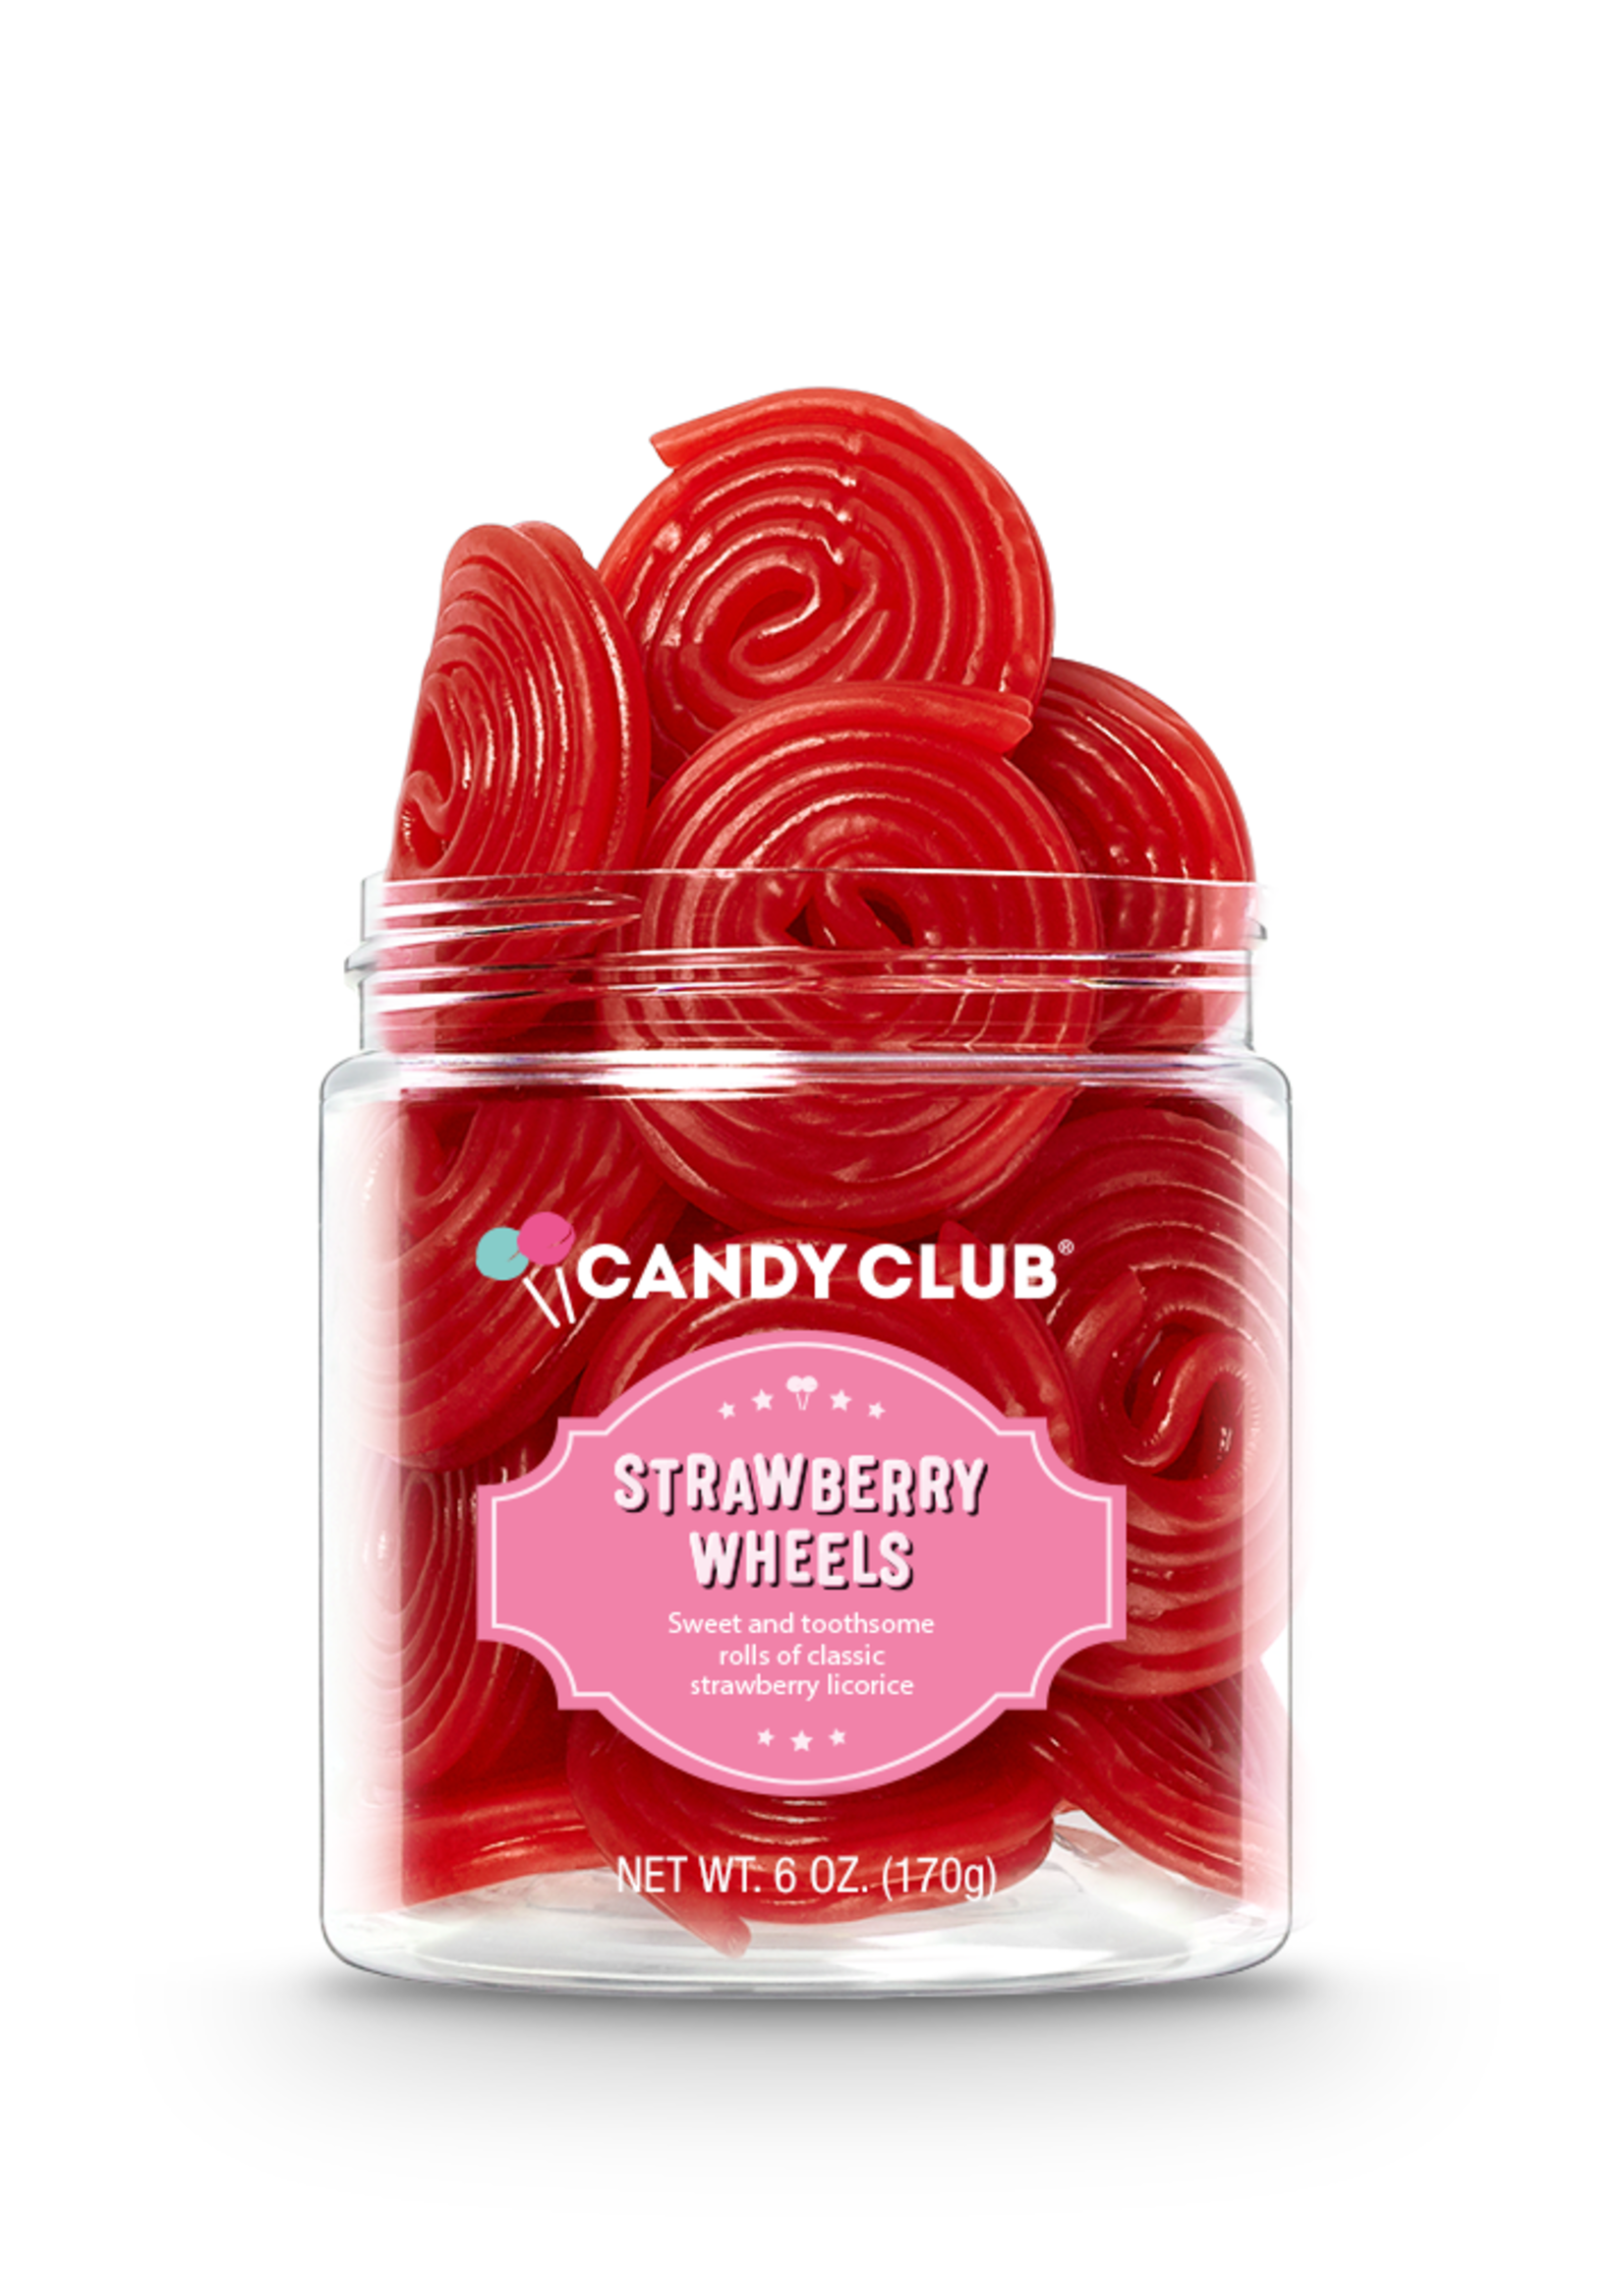 Candy Club Strawberry Wheels